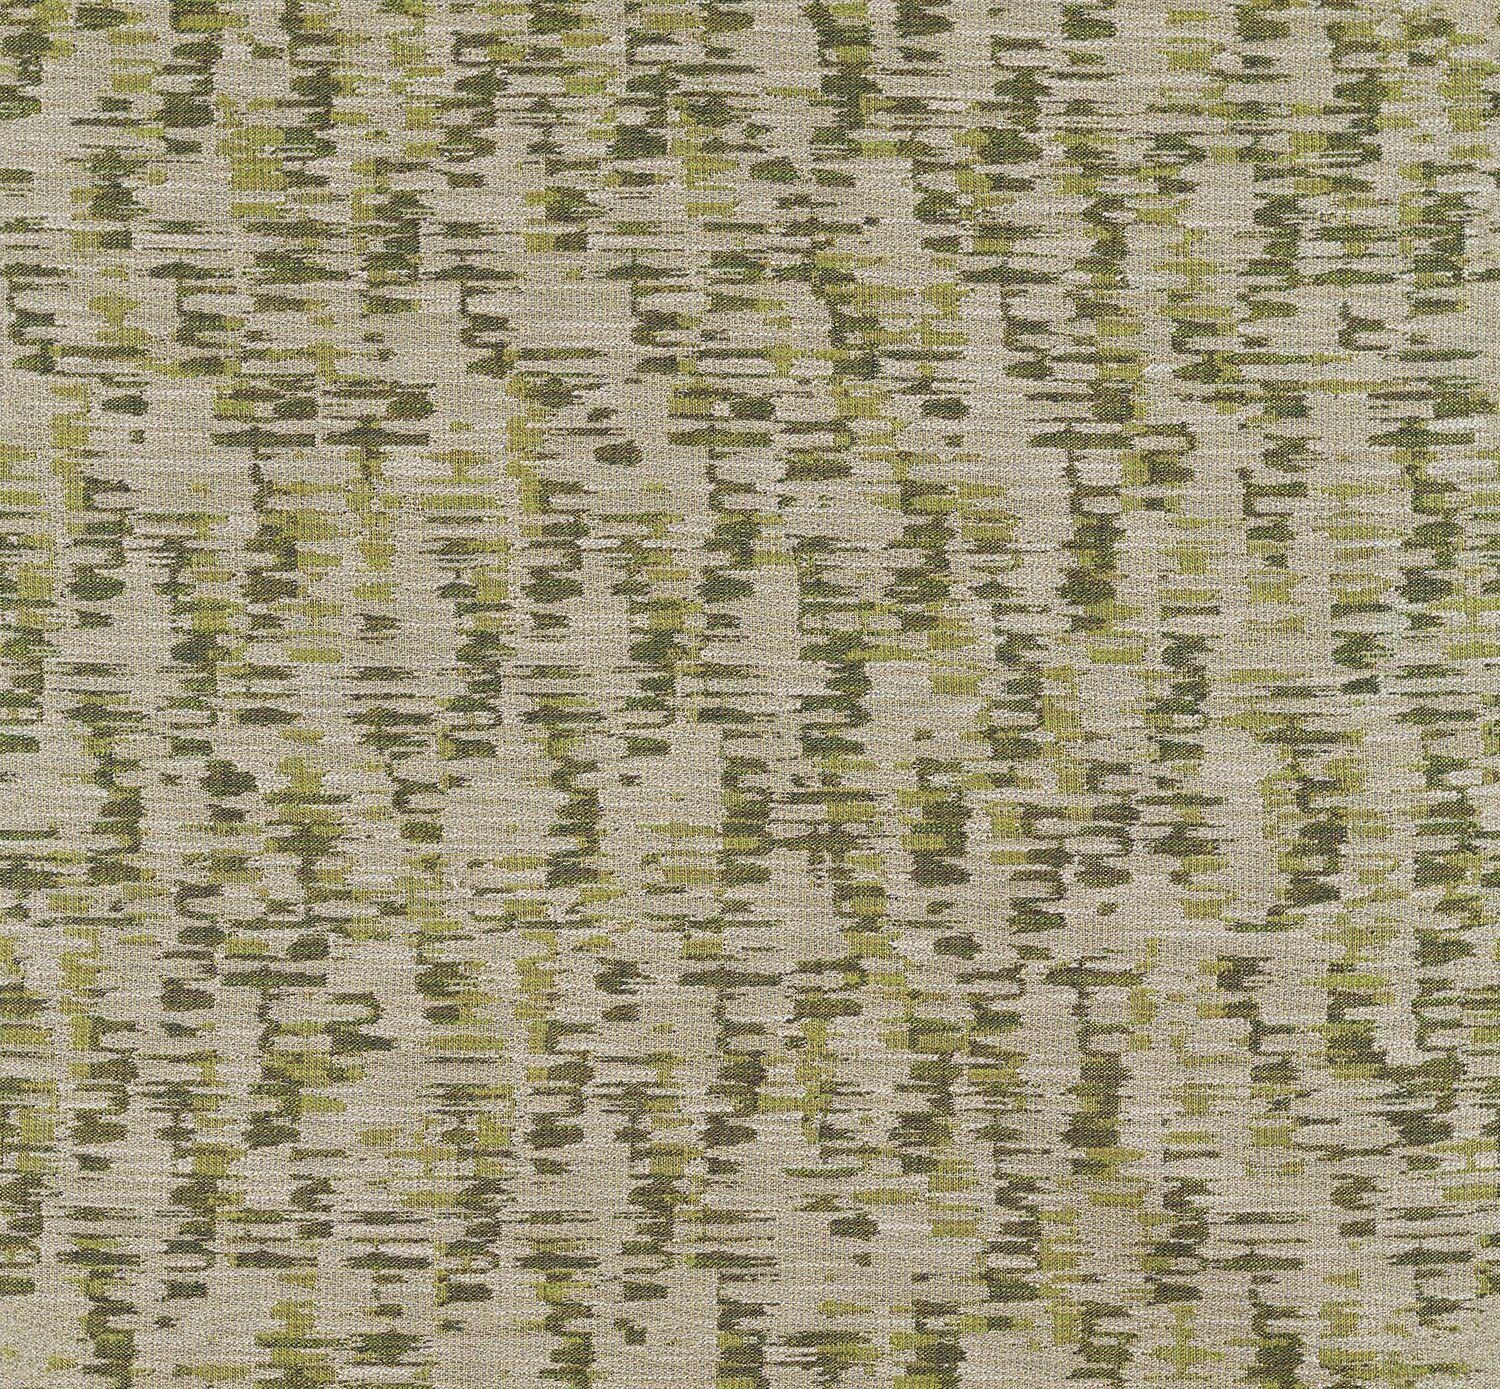 Wavefield - Rivulet - 4091 - 05 Tileable Swatches